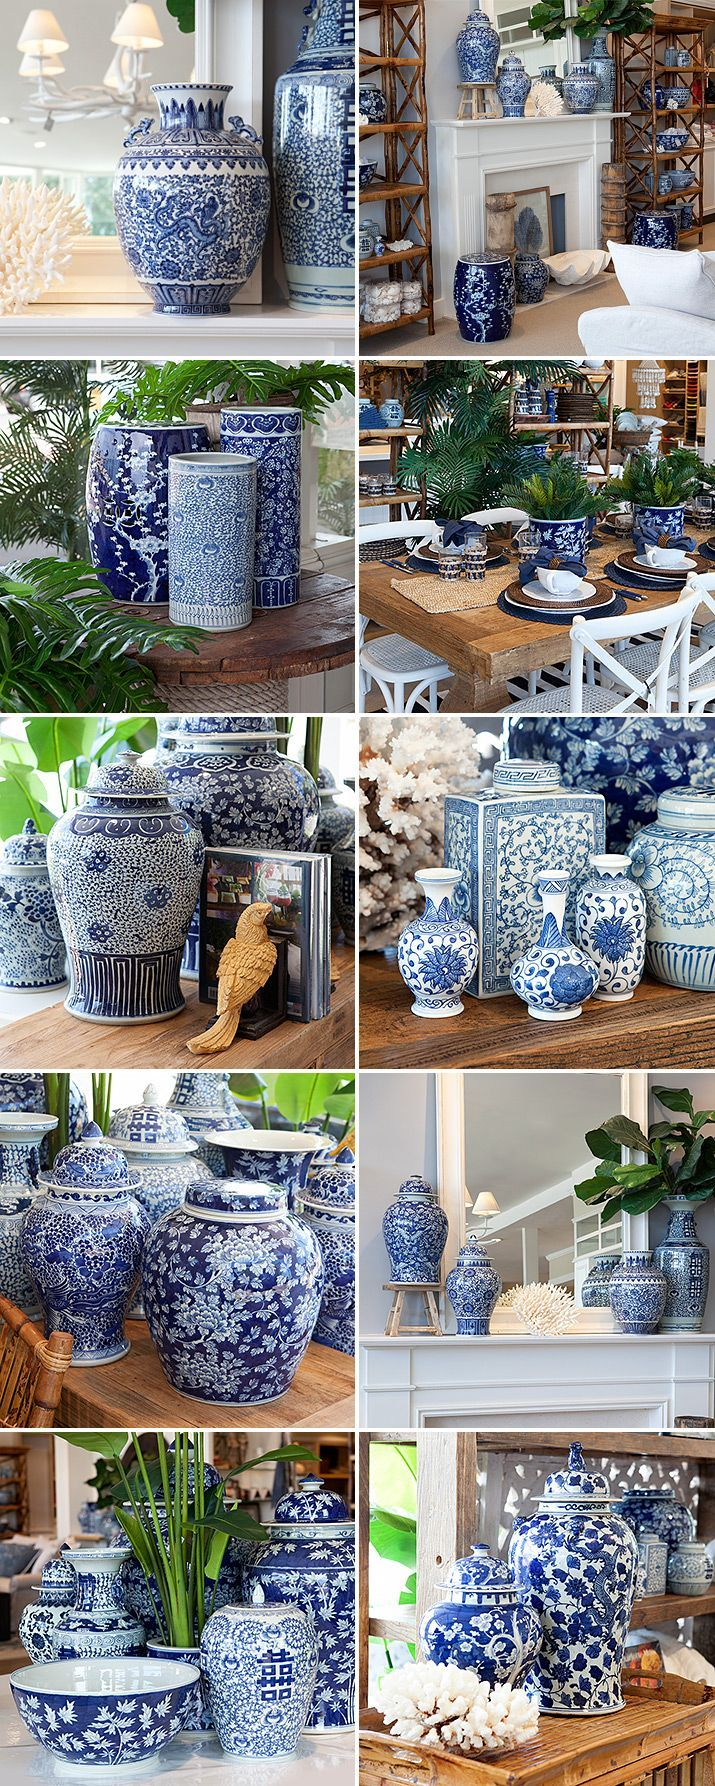 Blue and white dynasty ginger jars.